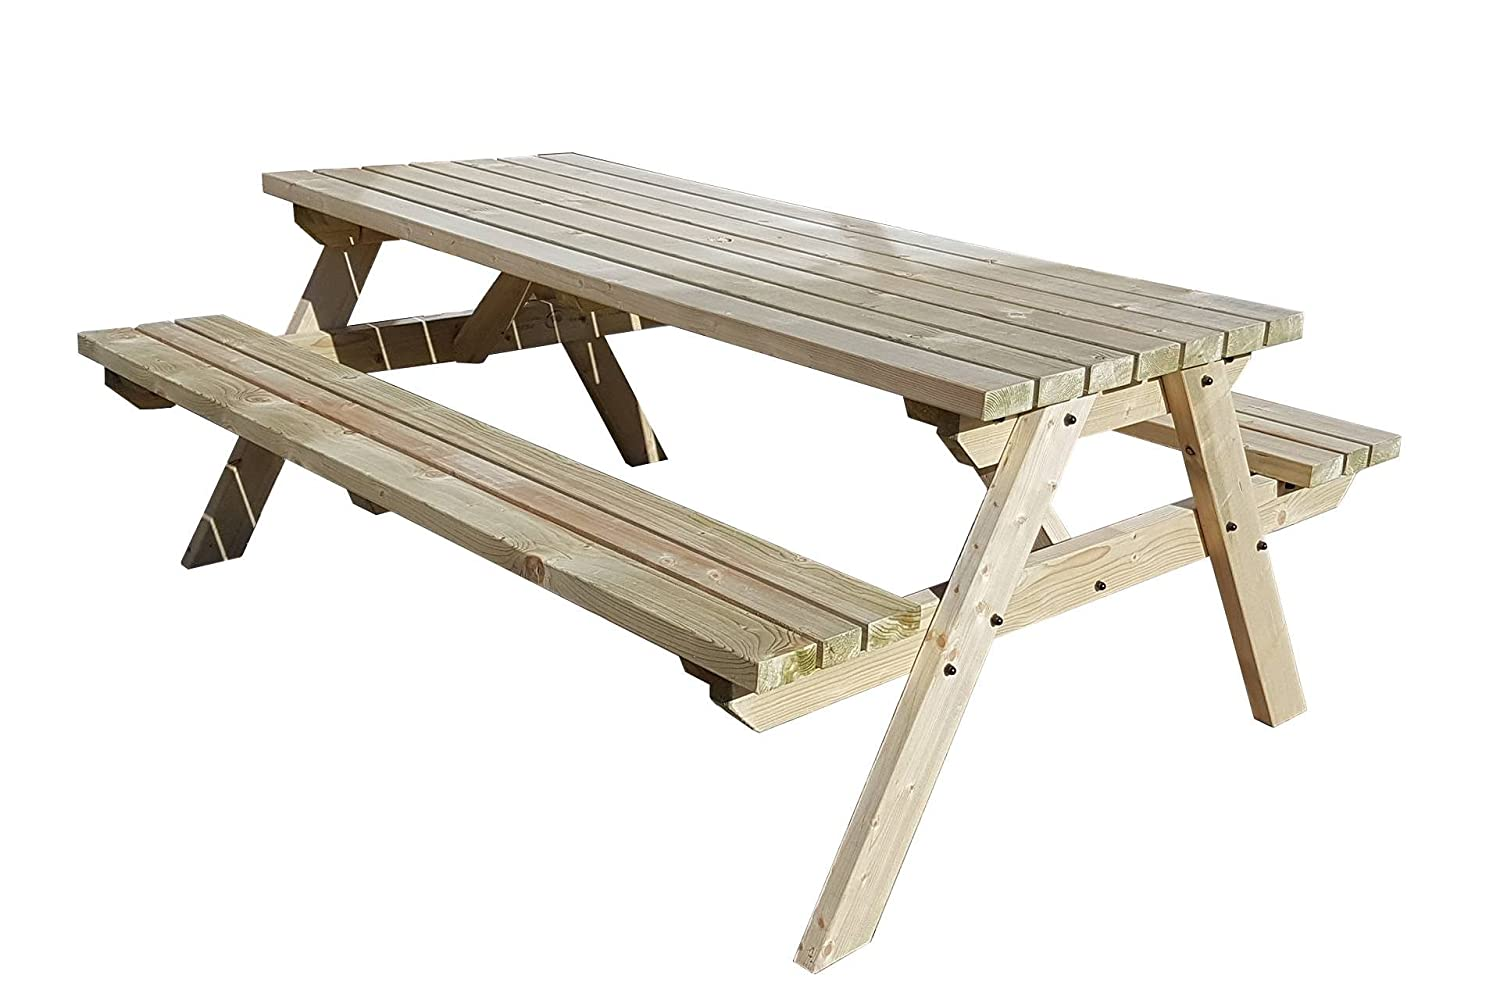 FORTEM Traditional Pub and Garden Style Bench - Commercial Grade - Heavy  Duty - Pressure Treated - Handmade Wooden Outdoor Furniture in UK - Light